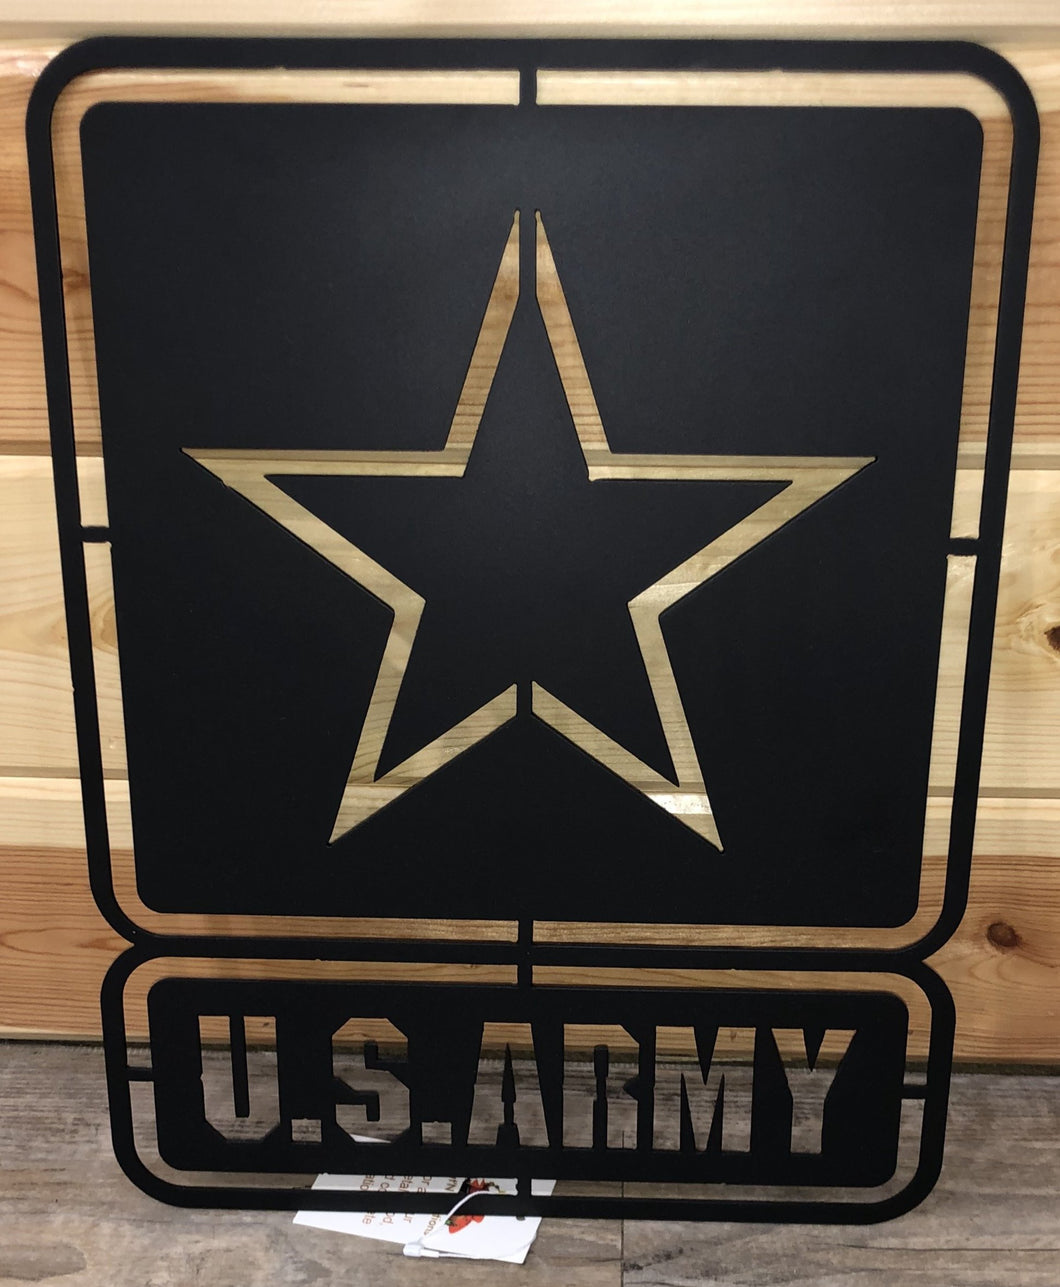 United States Army Star Emblem wall hanging metal art - cut'n creations